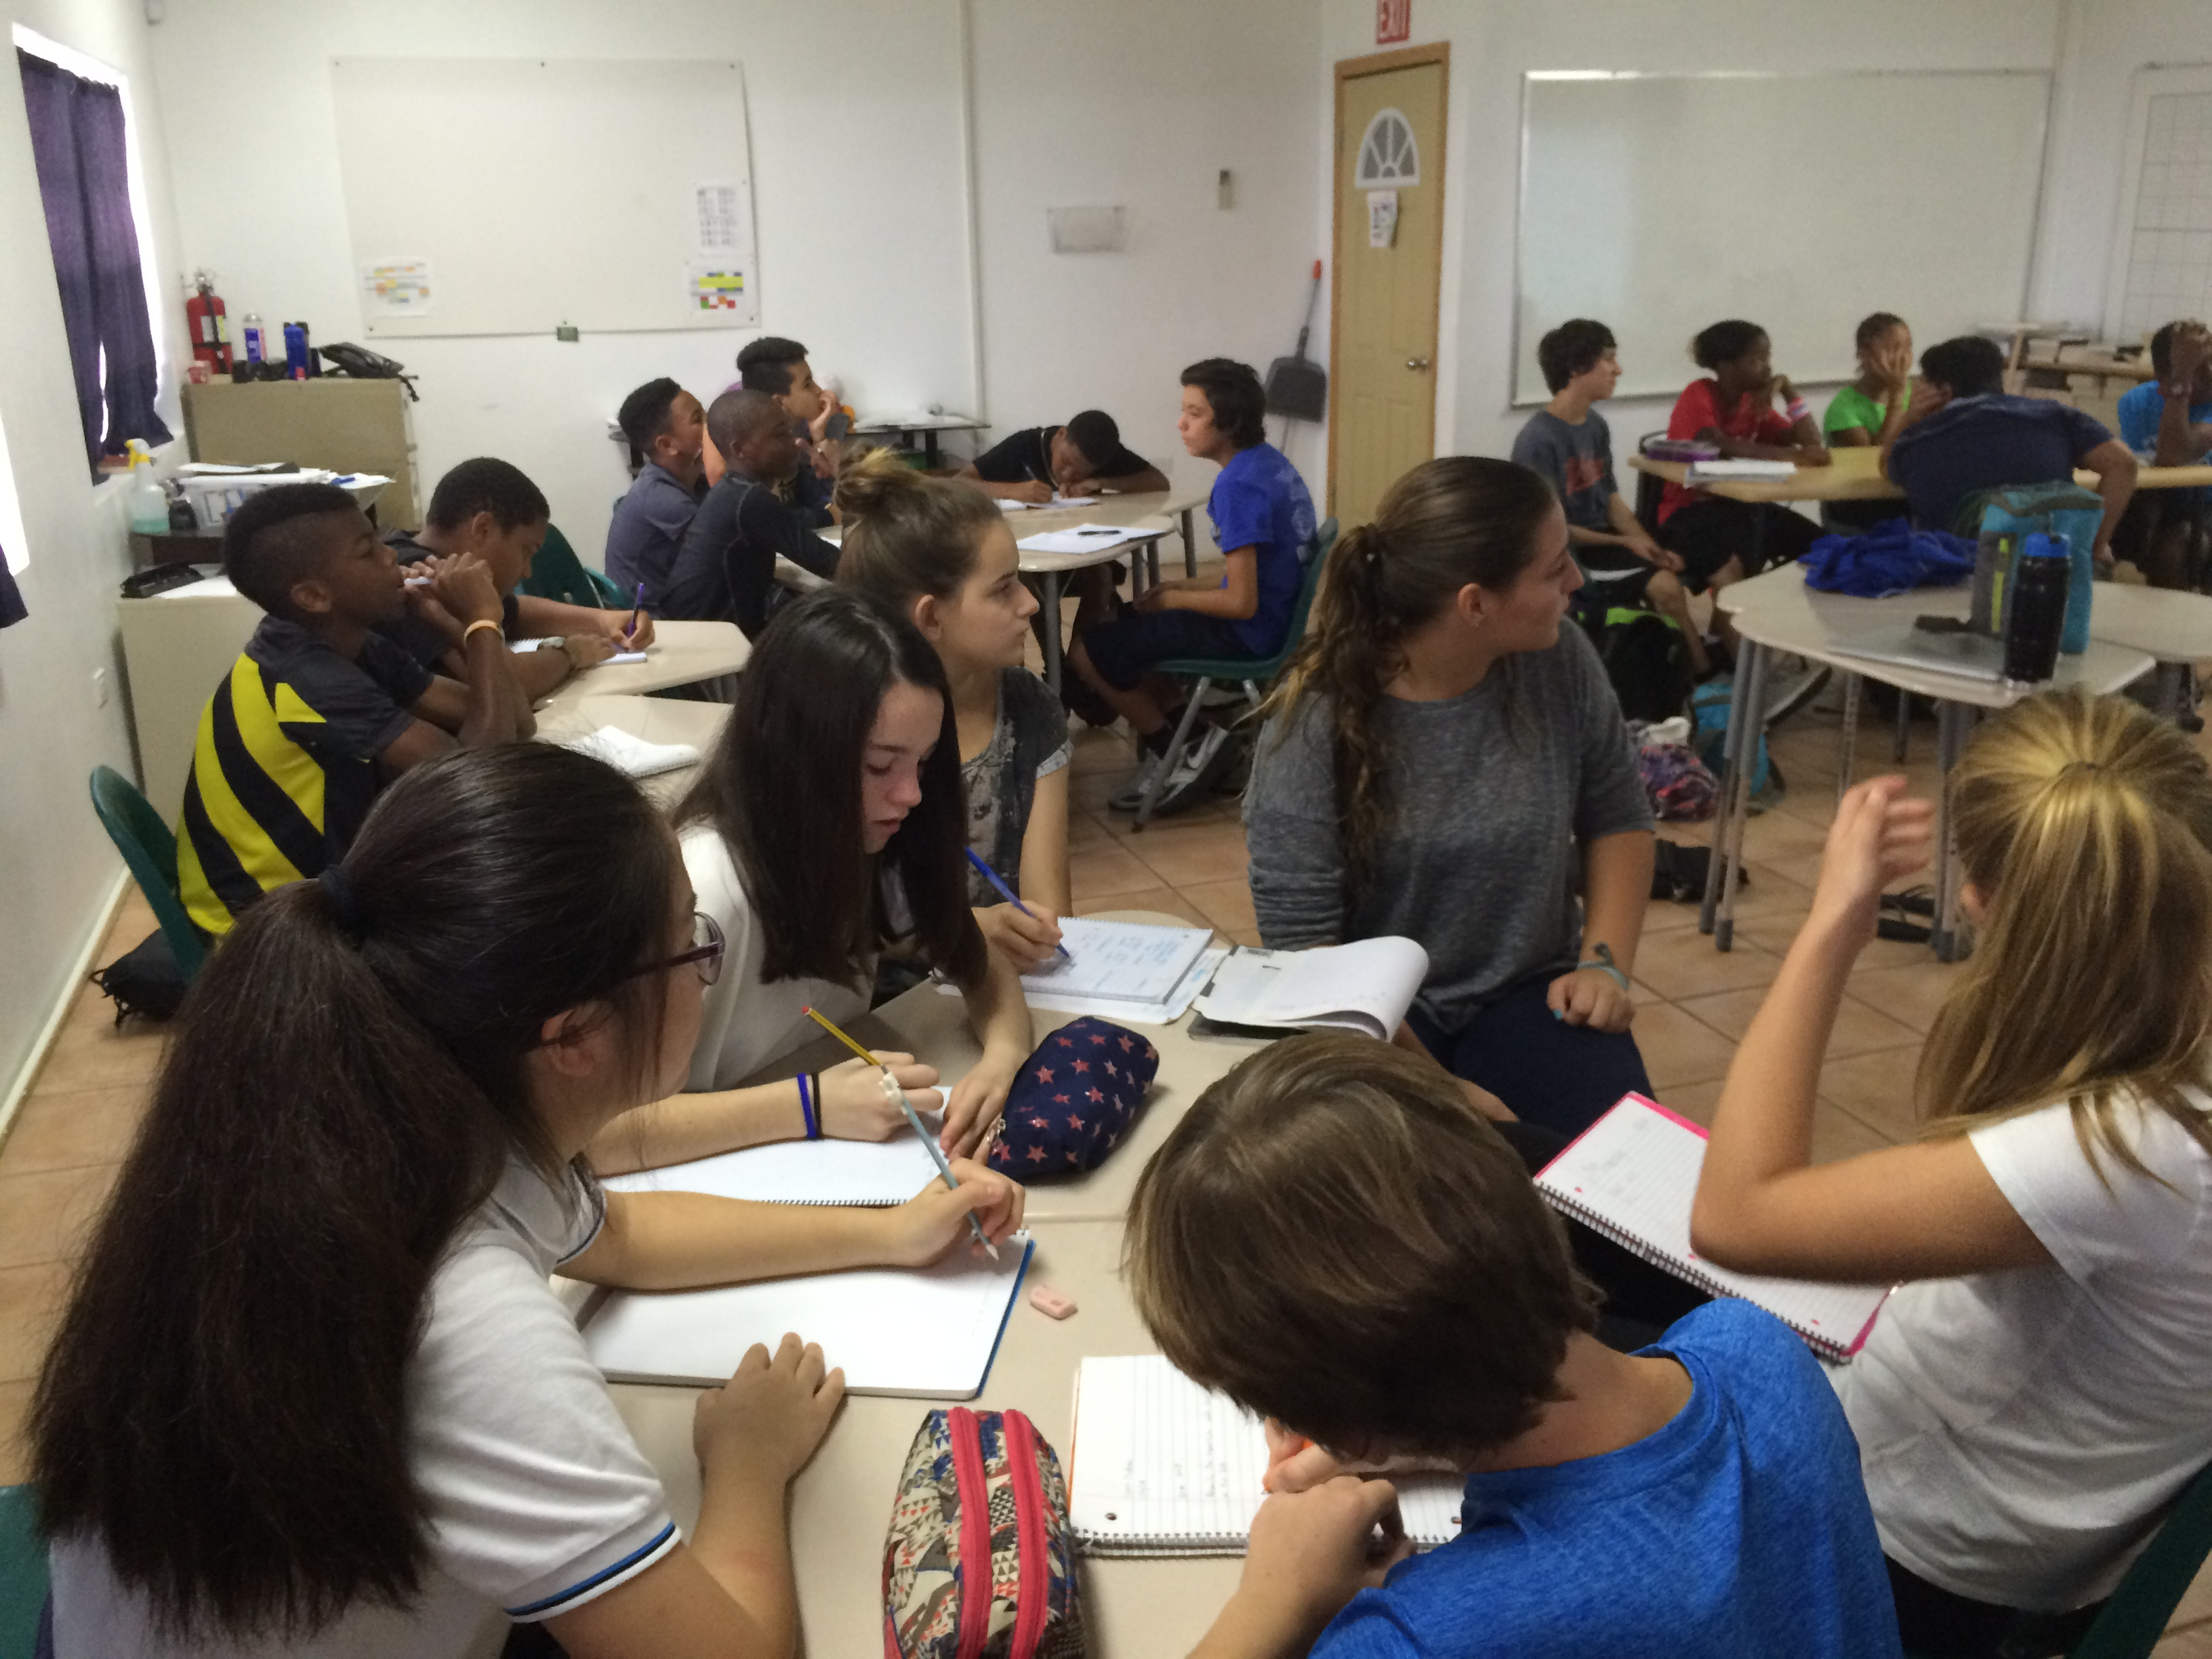 Madrid students in class with Peter Gruber International Academy 8th graders on St. Thomas